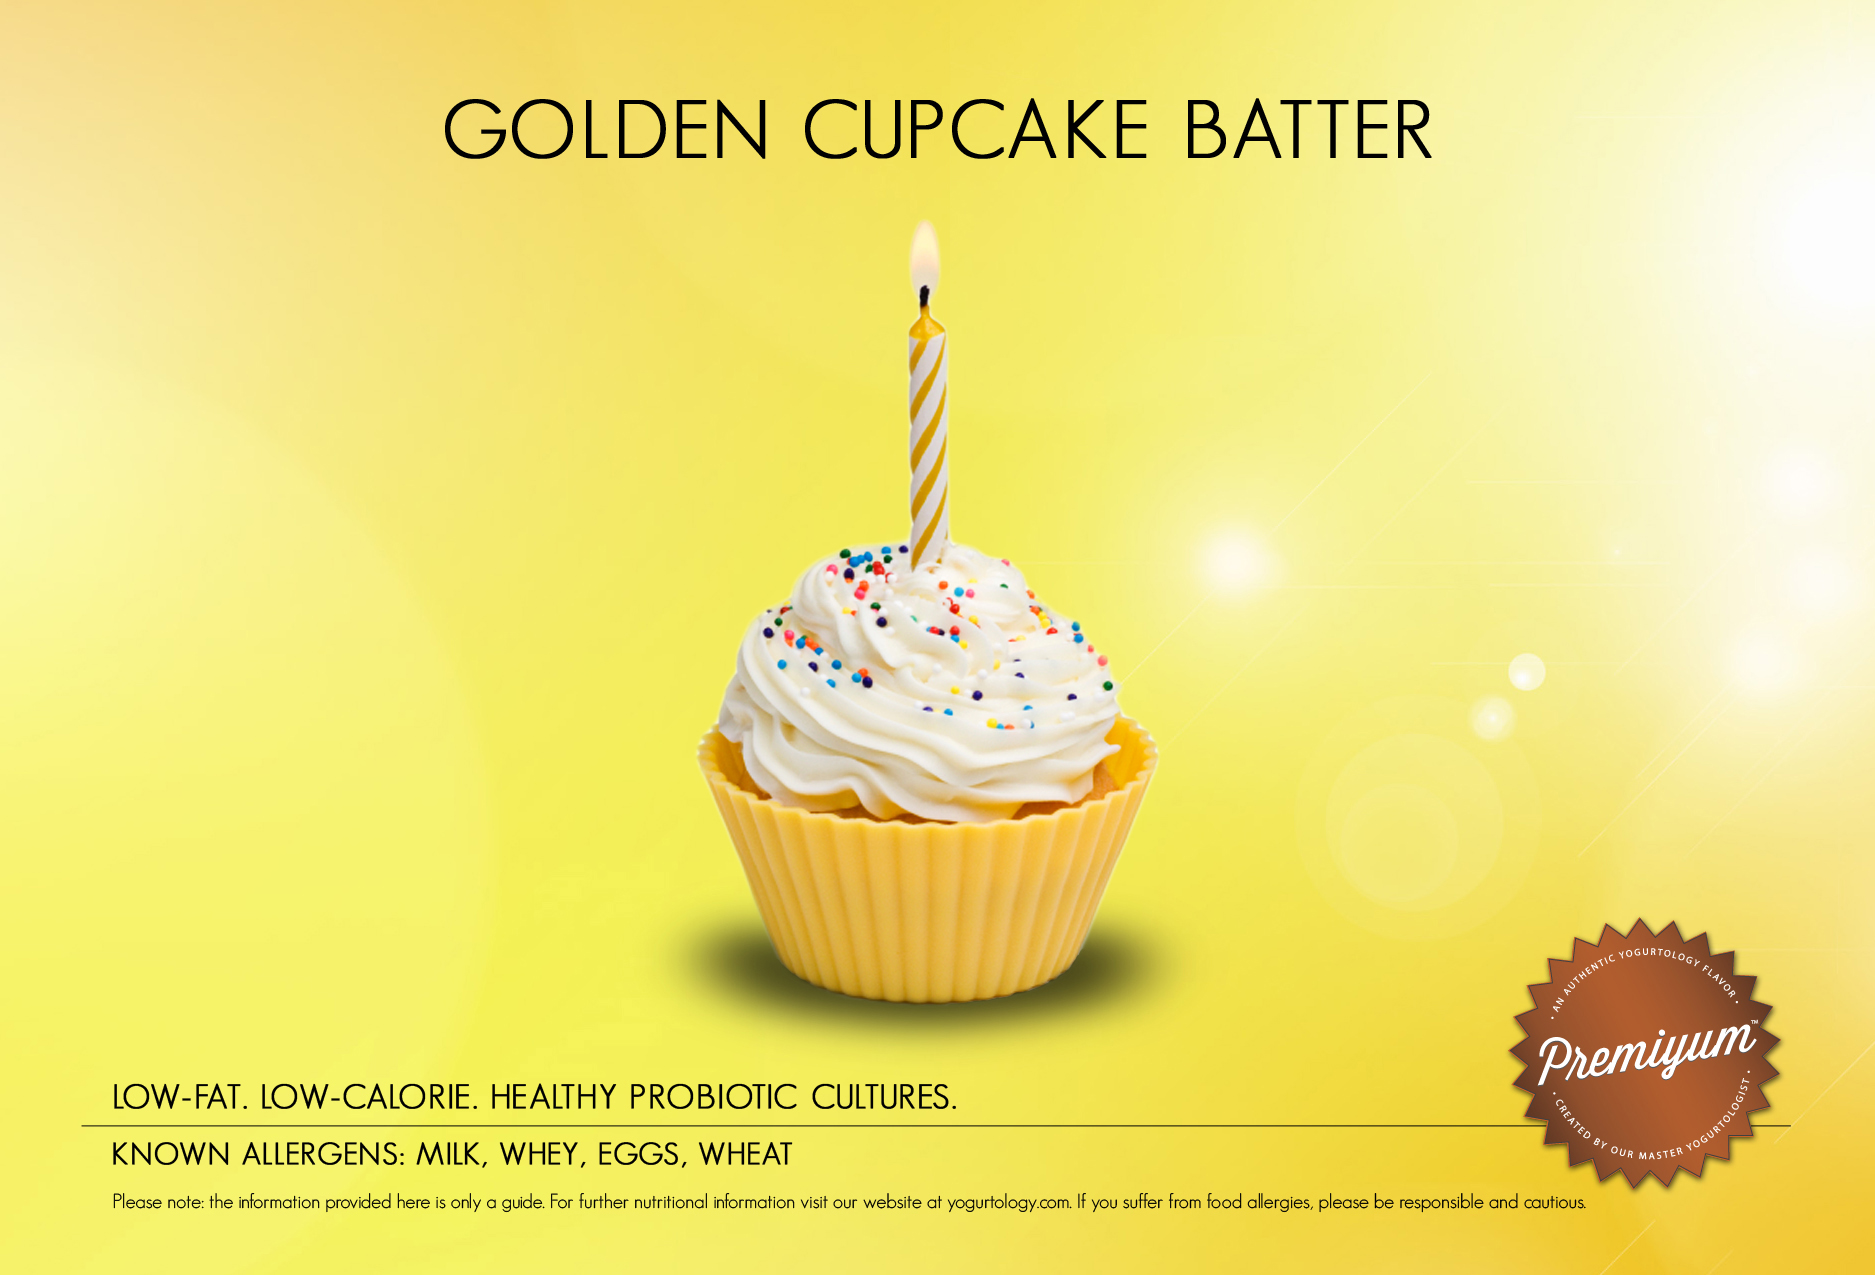 Golden Cupcake Batter